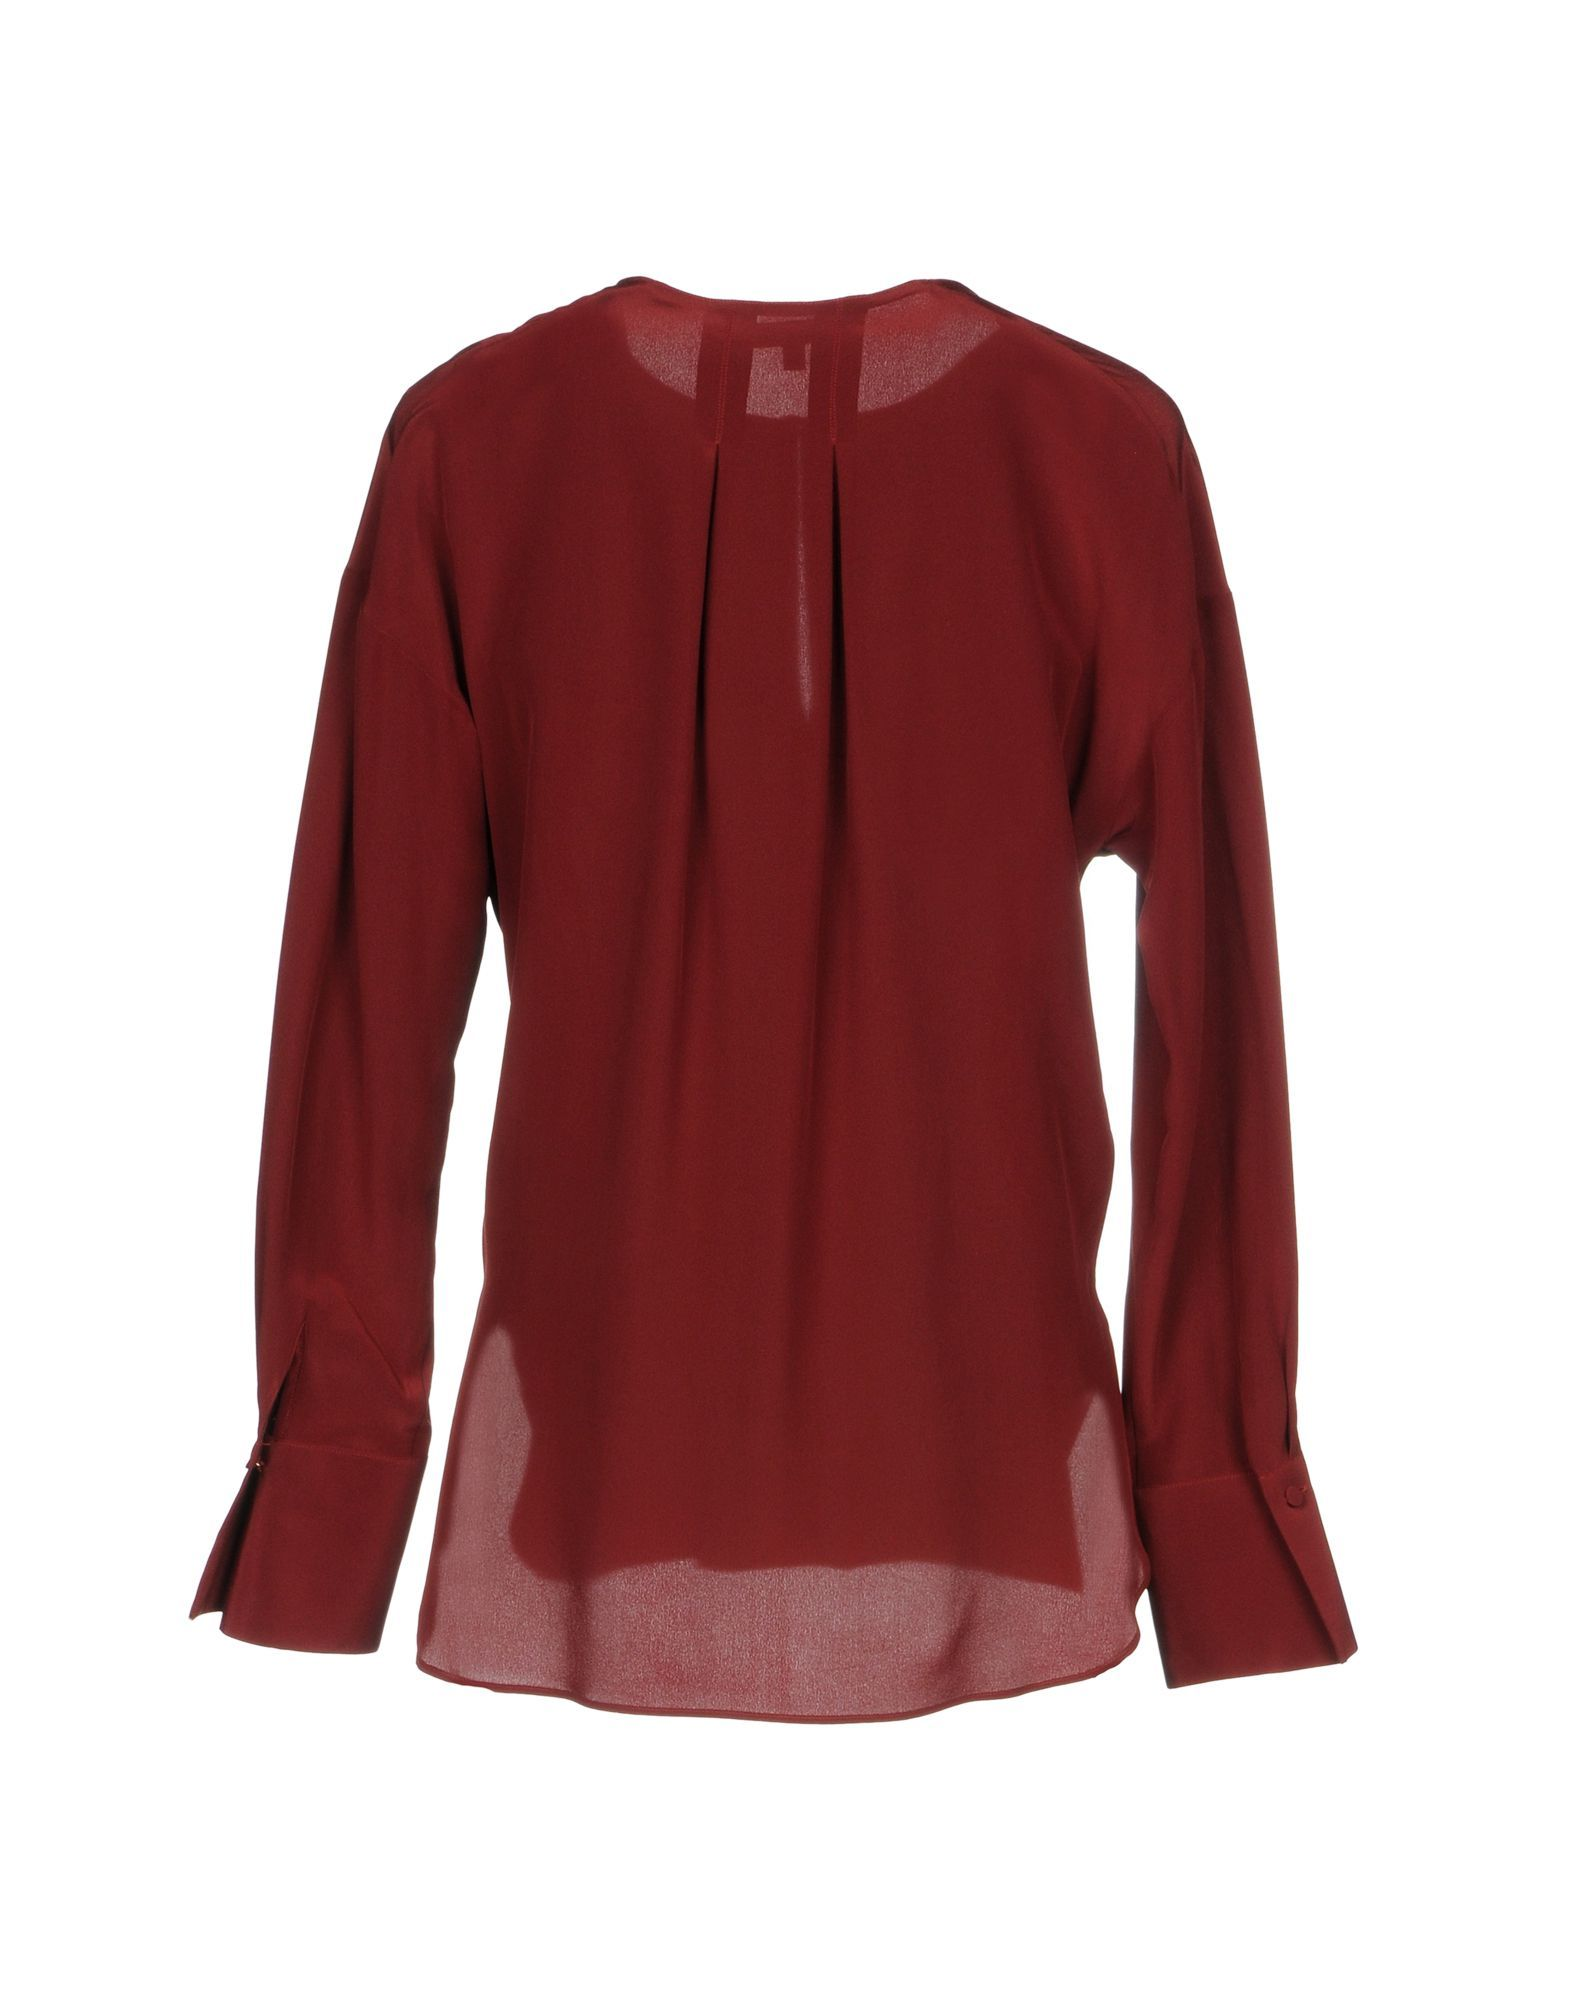 Brian Dales Brick Red Silk Shirt